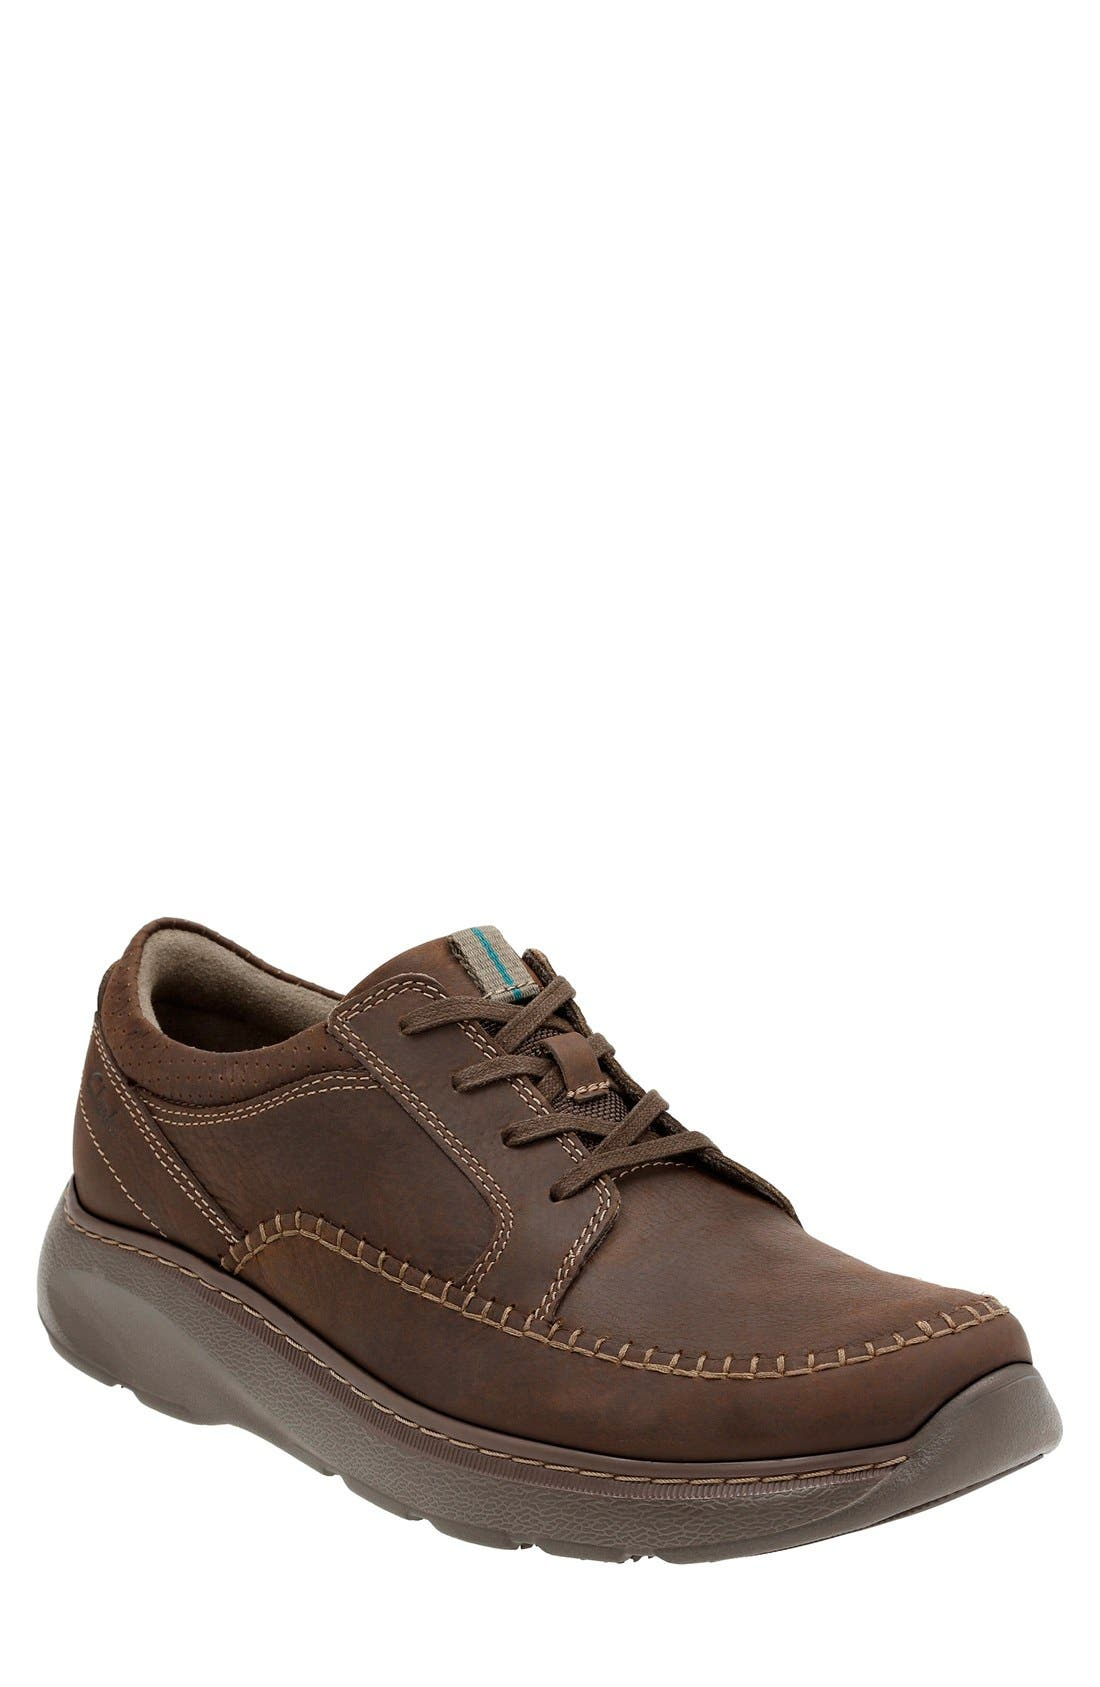 'Charton Vibe' Moc Toe Derby,                             Main thumbnail 1, color,                             Dark Brown